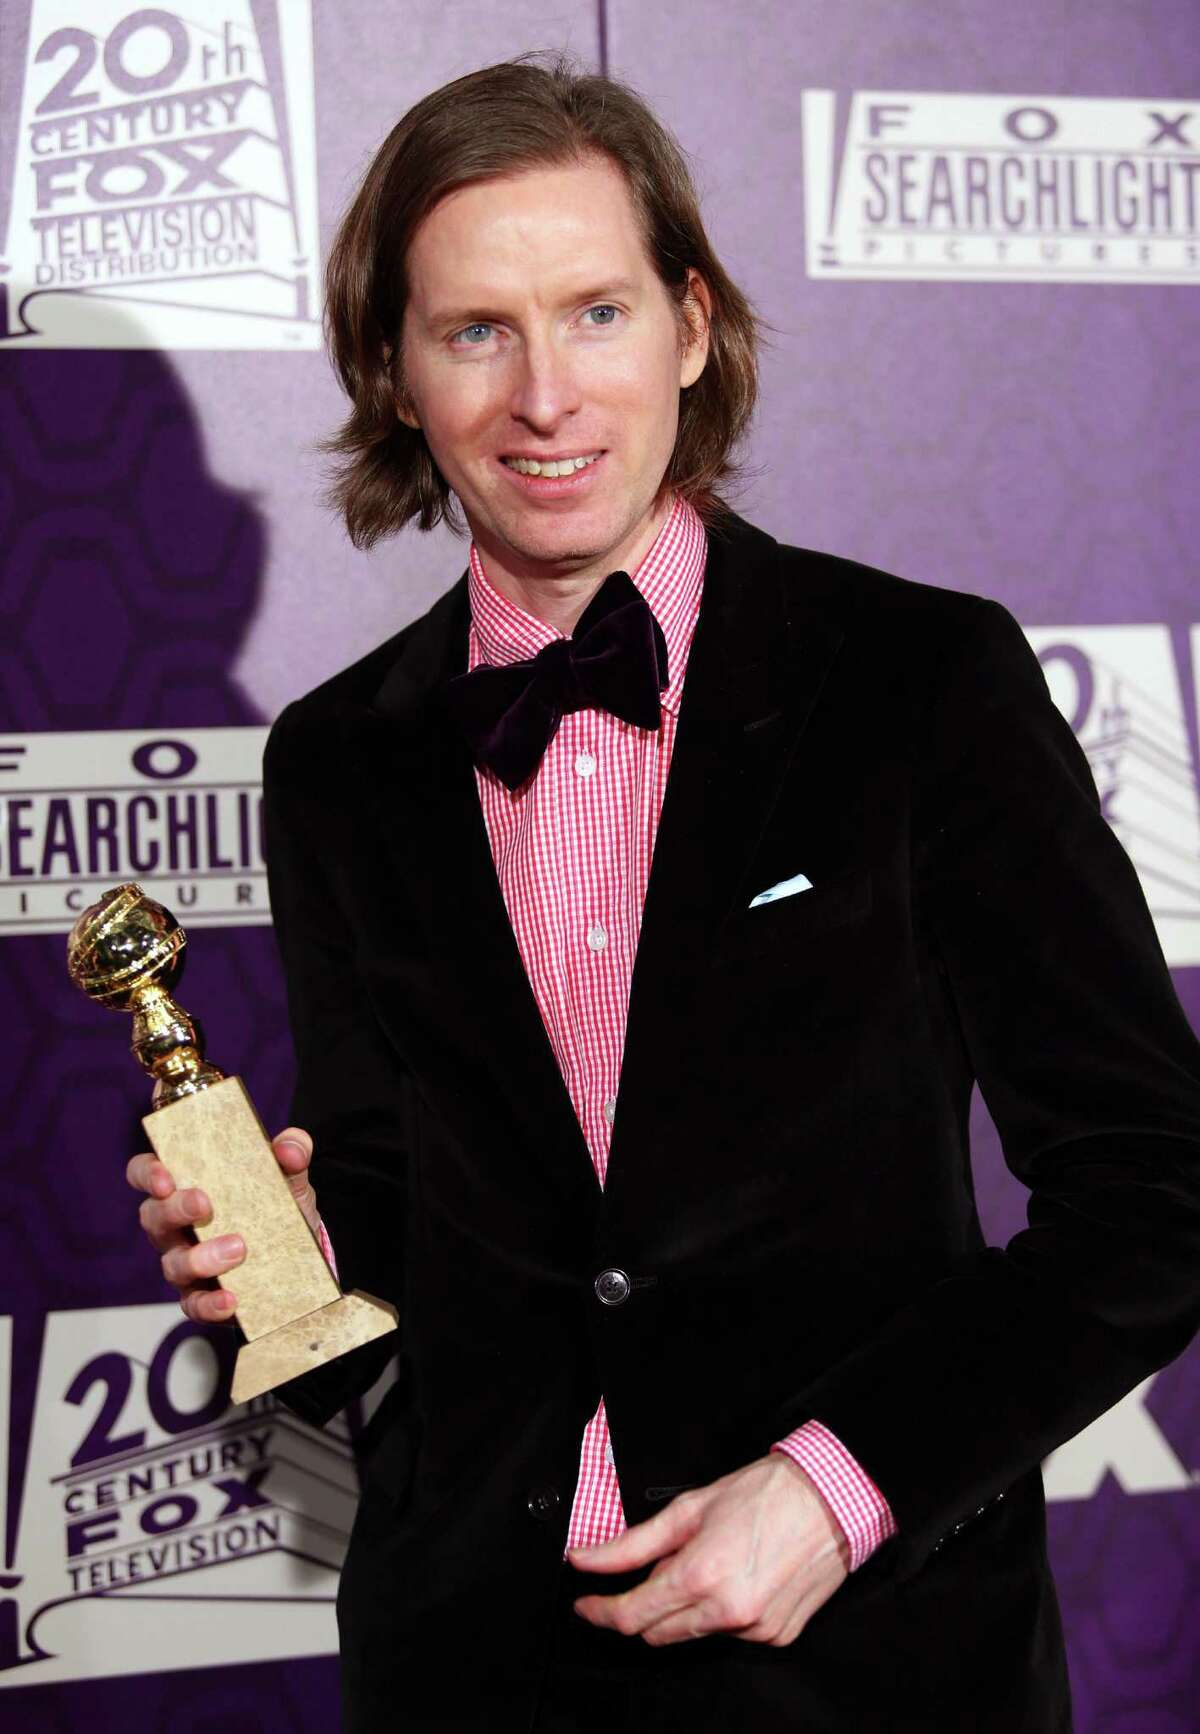 Wes Anderson Unclaimed property total: $334.21 Source: Texas Unclaimed Property